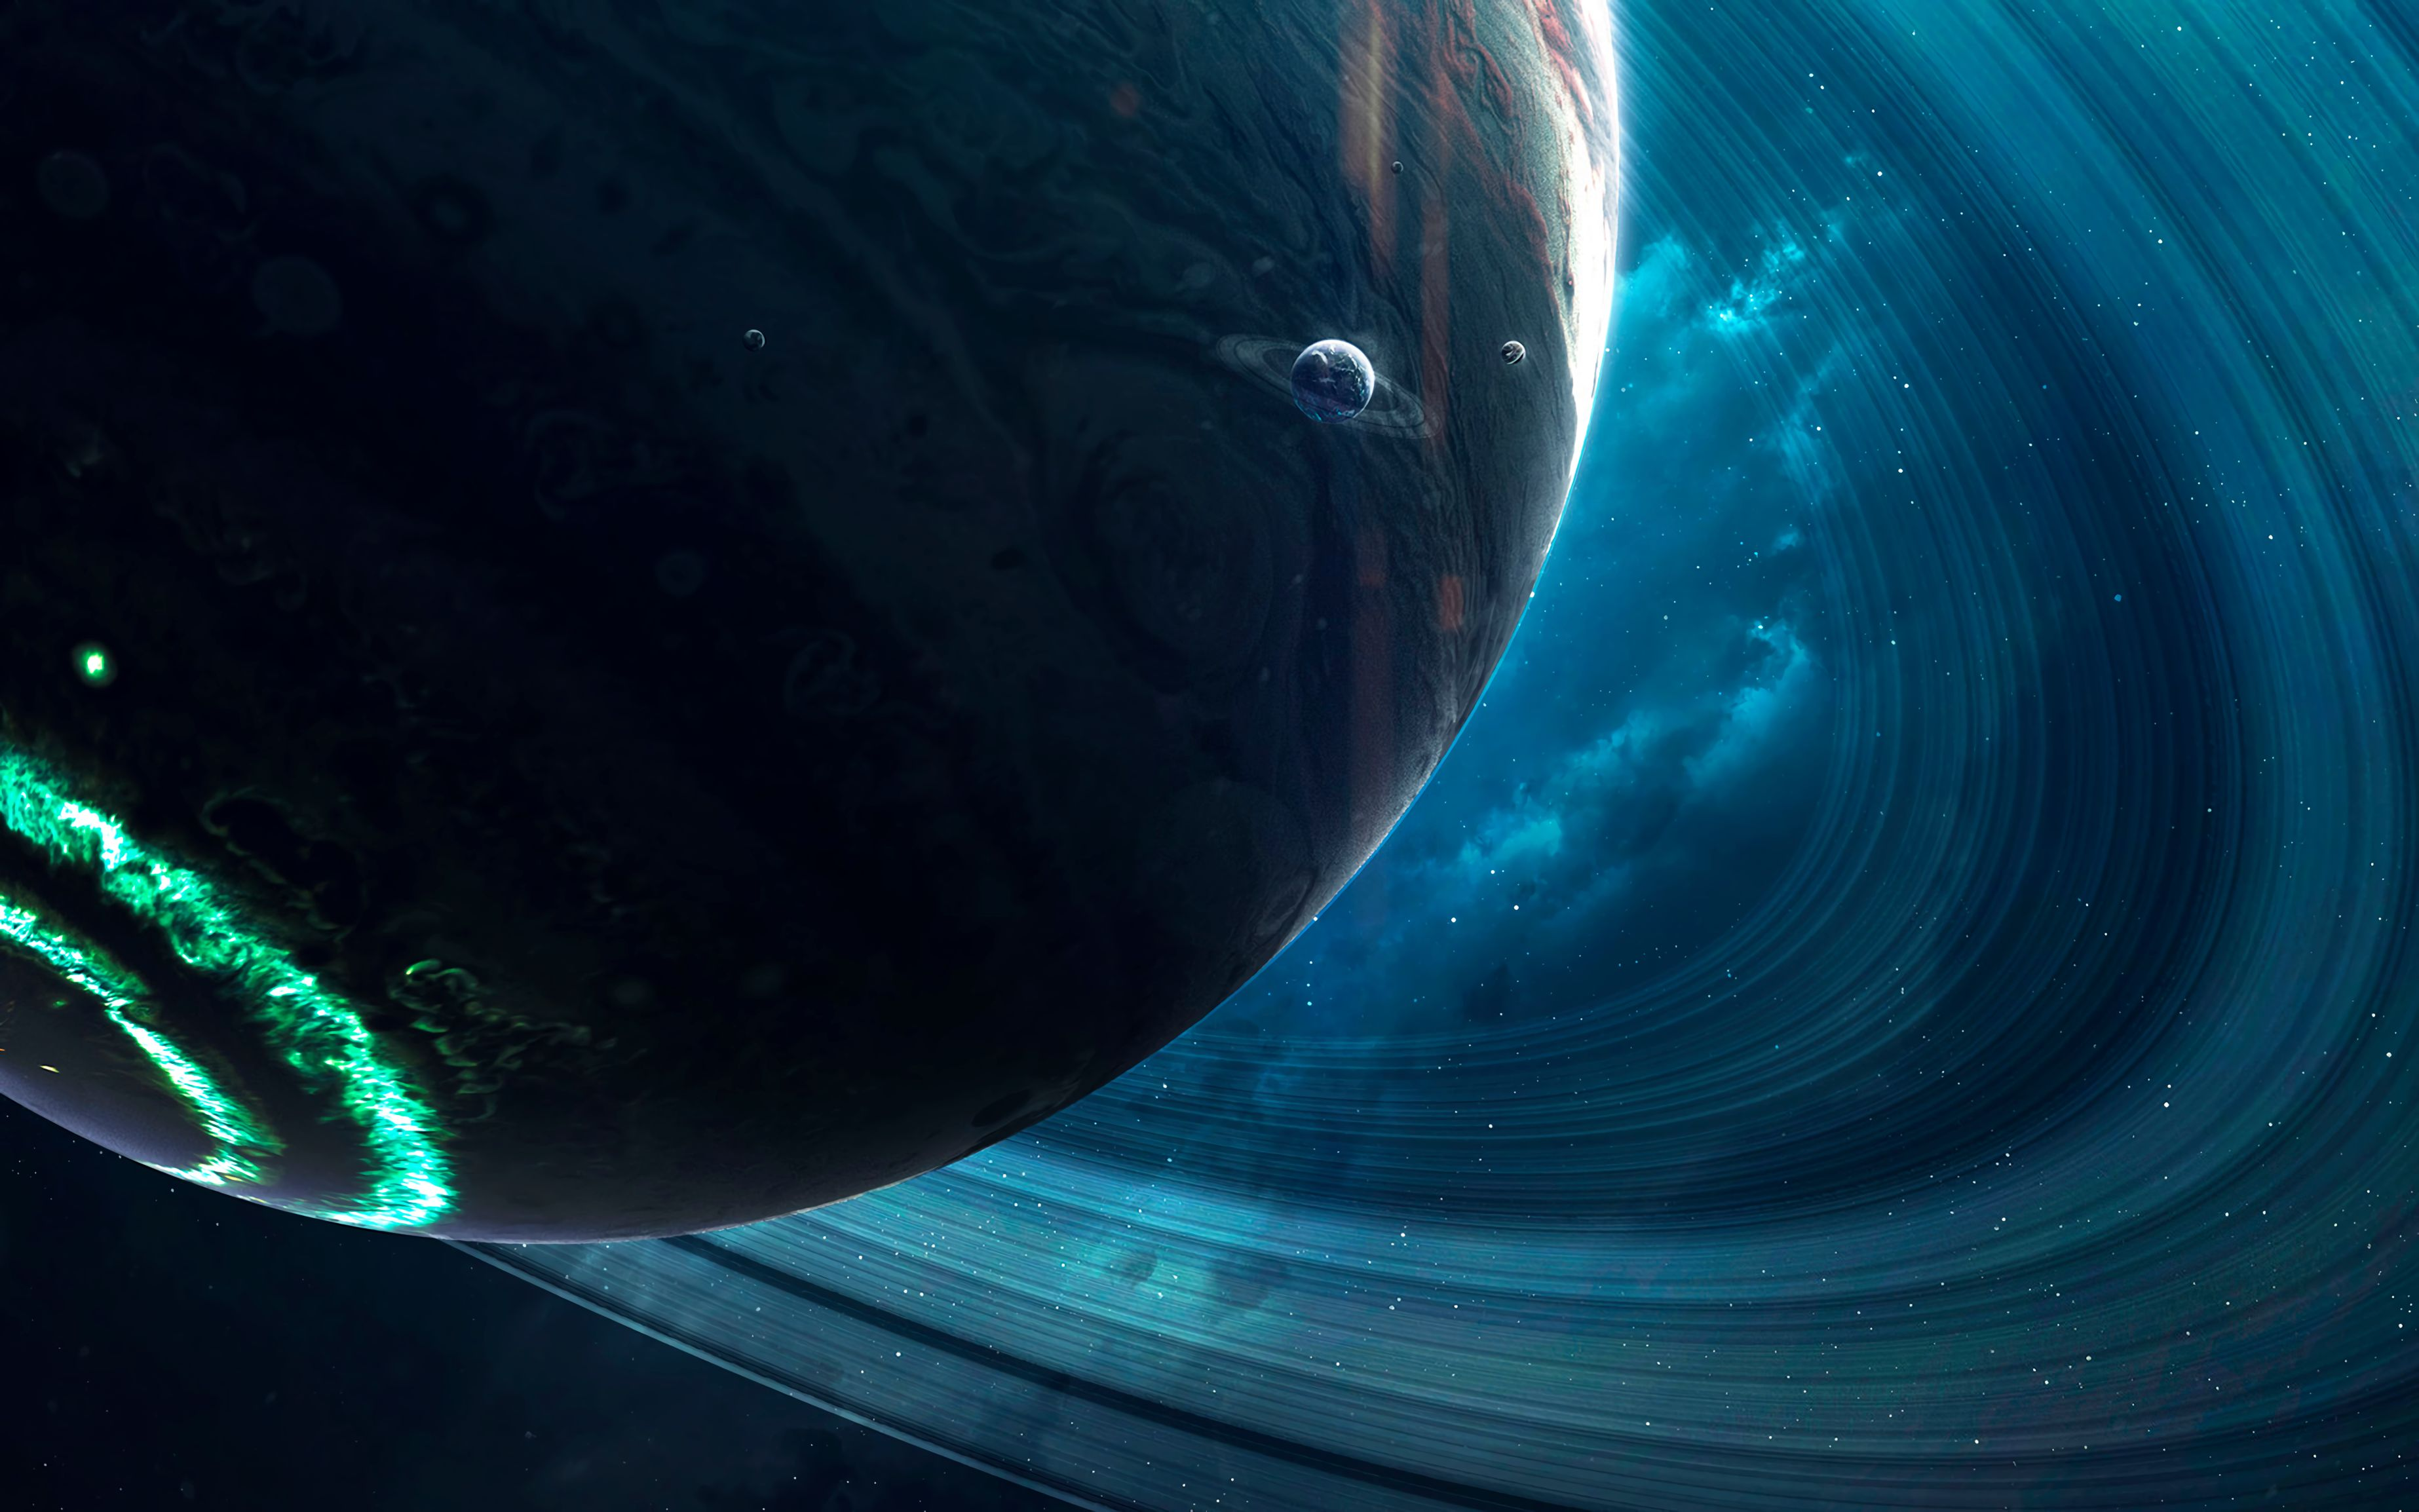 148113 free wallpaper 1080x2340 for phone, download images Planets, Universe, Rings, Space, Cosmic 1080x2340 for mobile